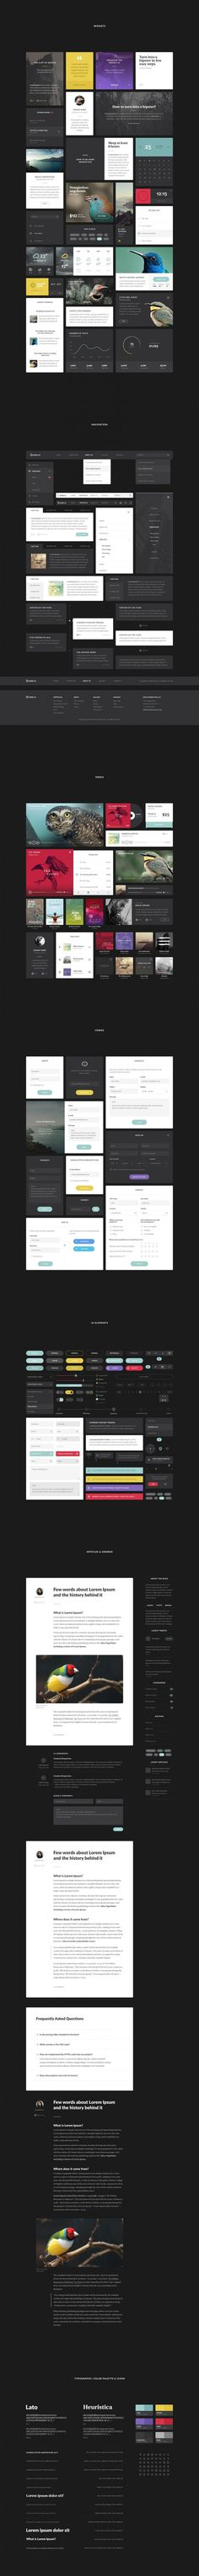 Aves UI Kit #ui #kit #interface #design